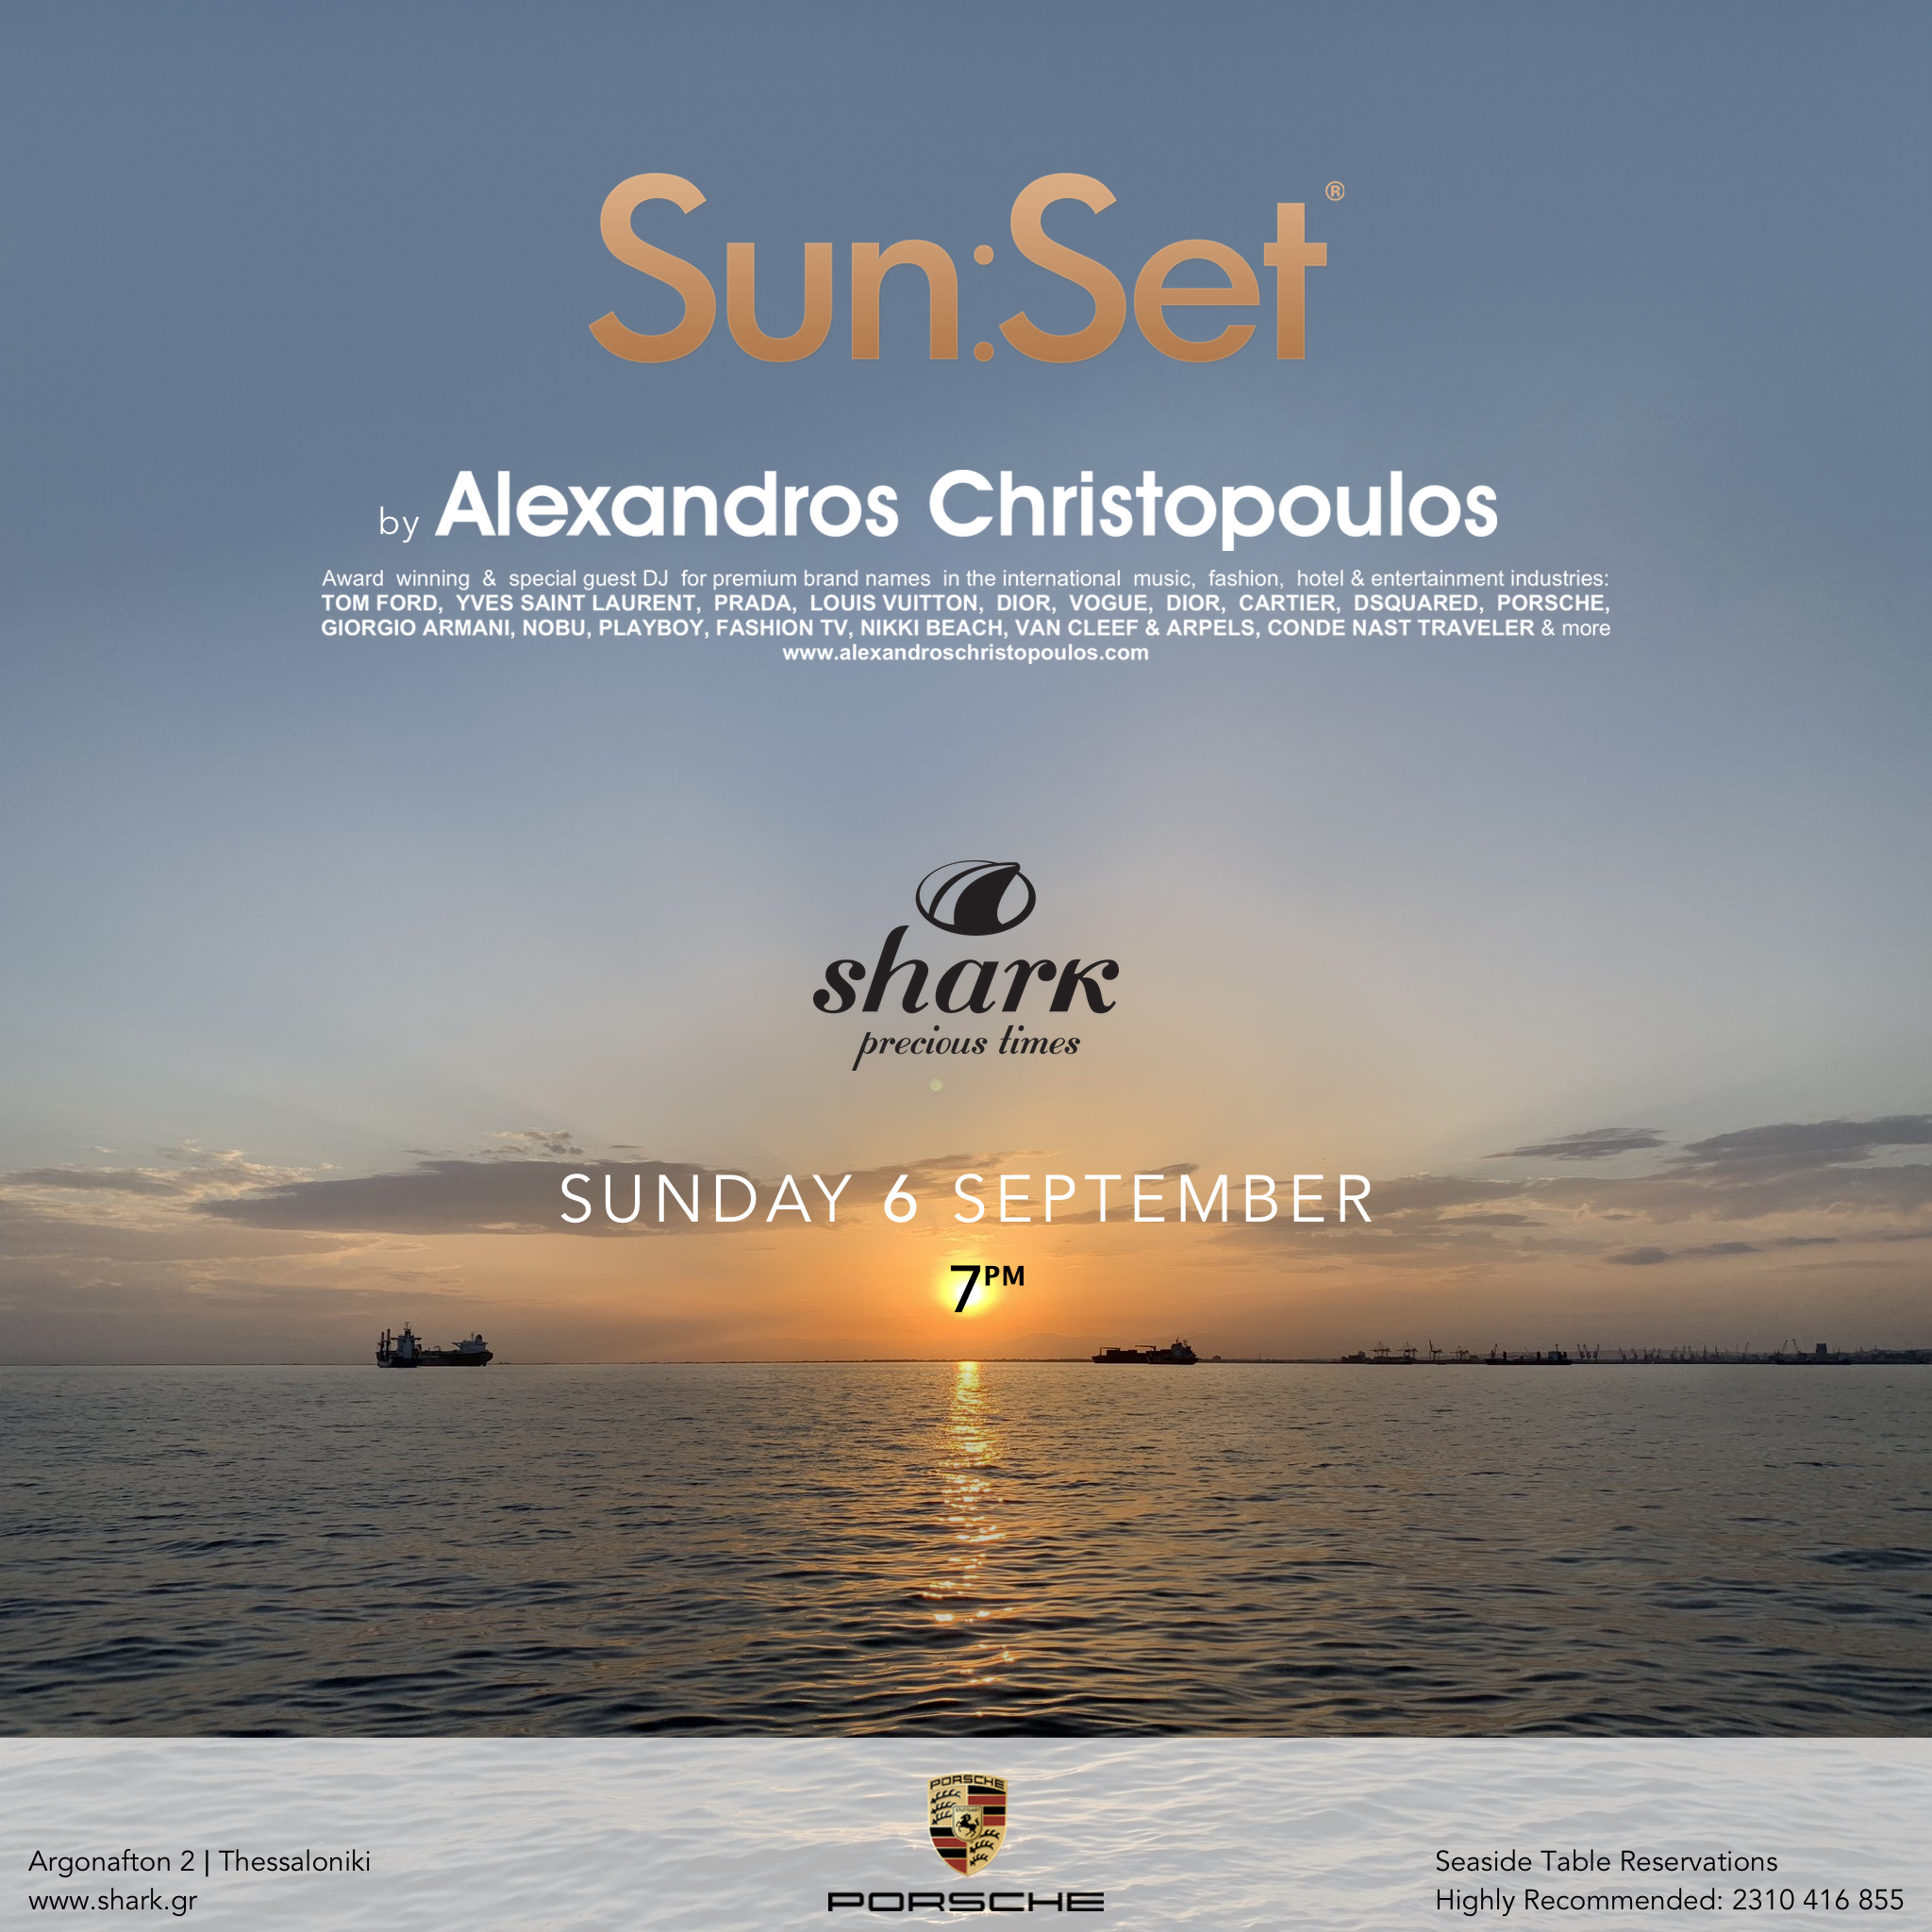 Sun:Set ® SHARK (Thessaloniki)